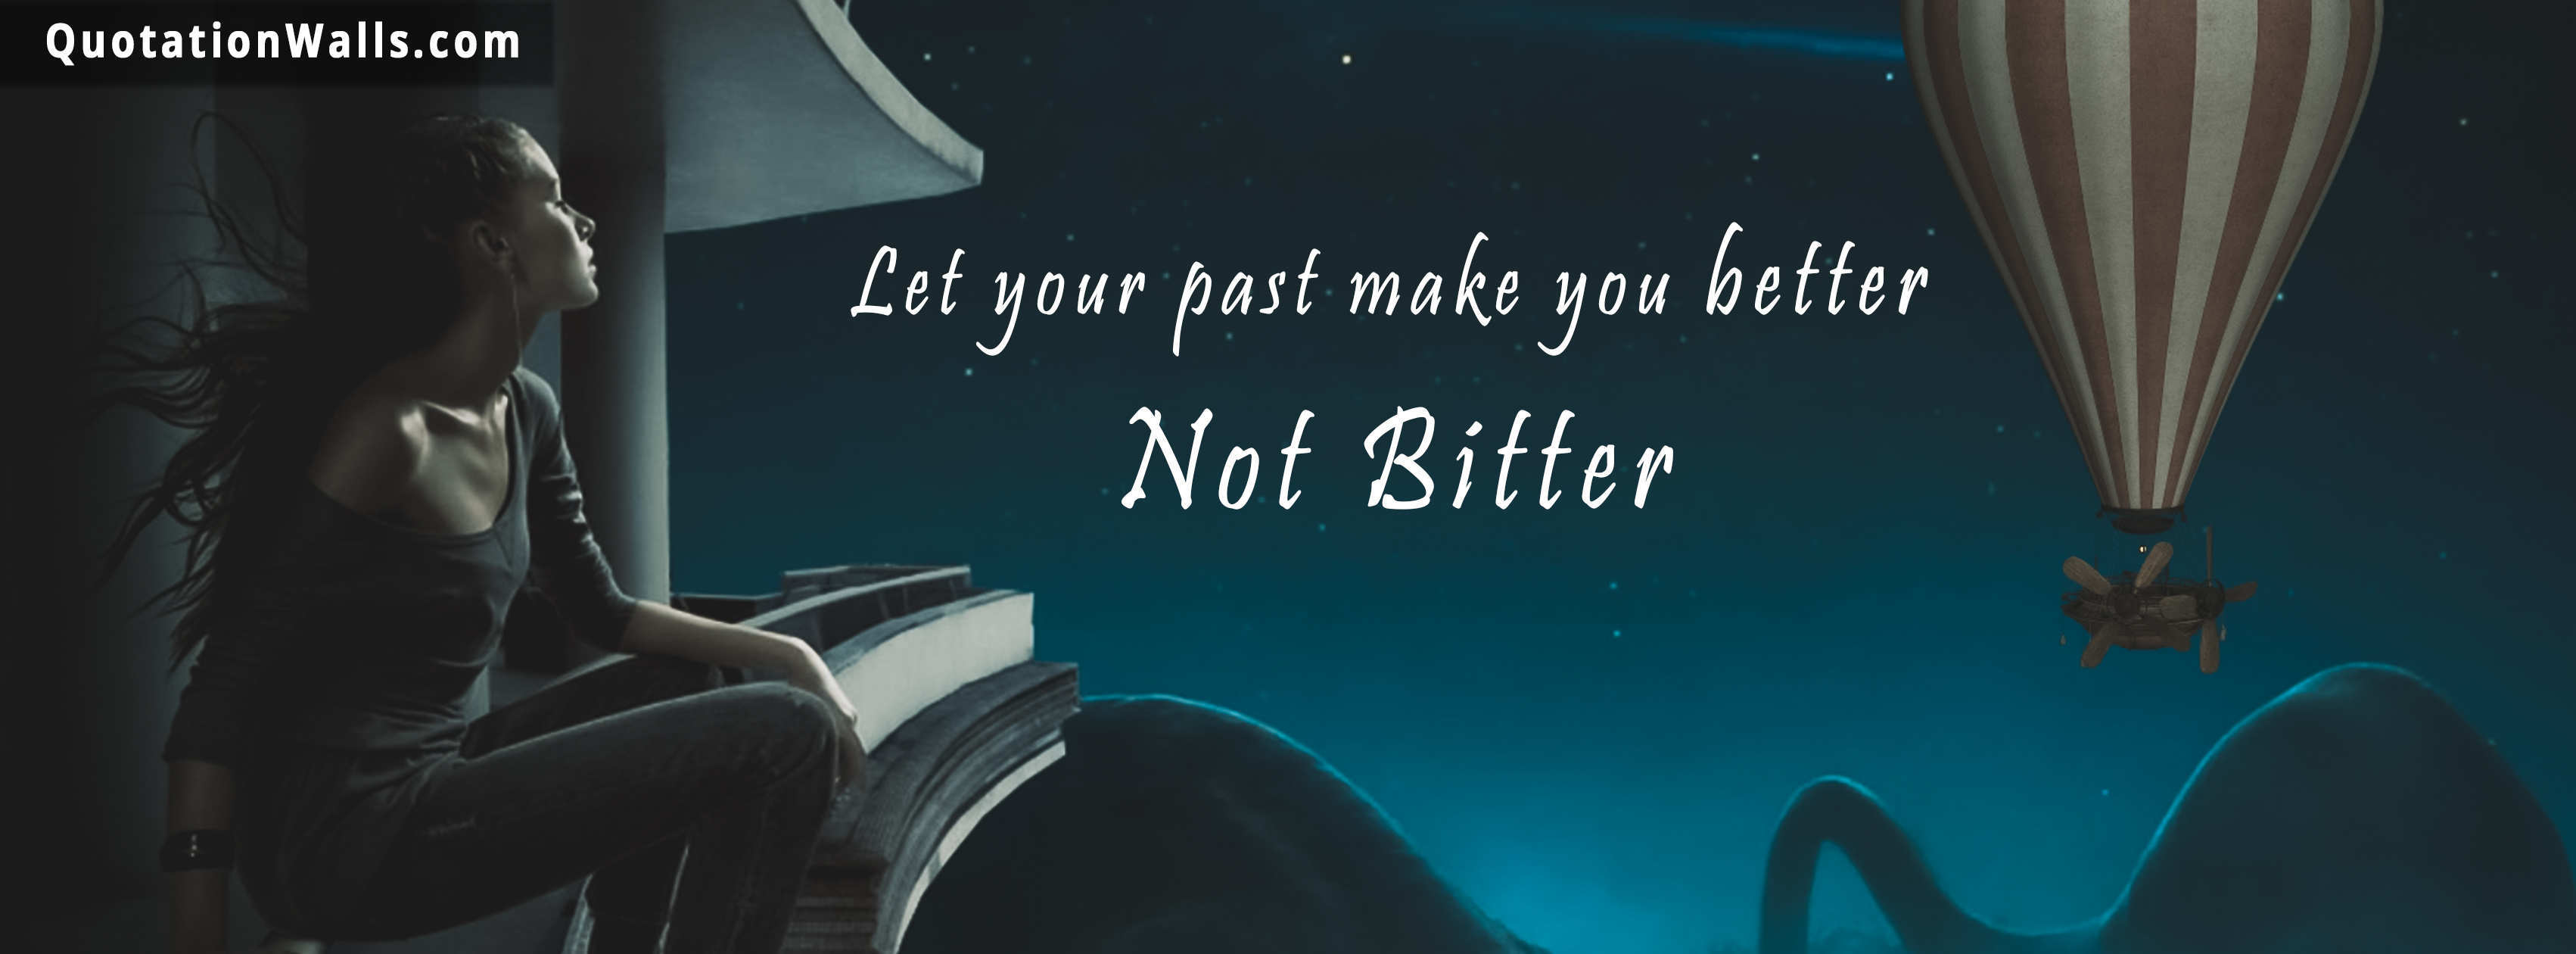 Sad Quote Wallpaper For Whatsapp Past Makes You Better Motivational Facebook Cover Photo